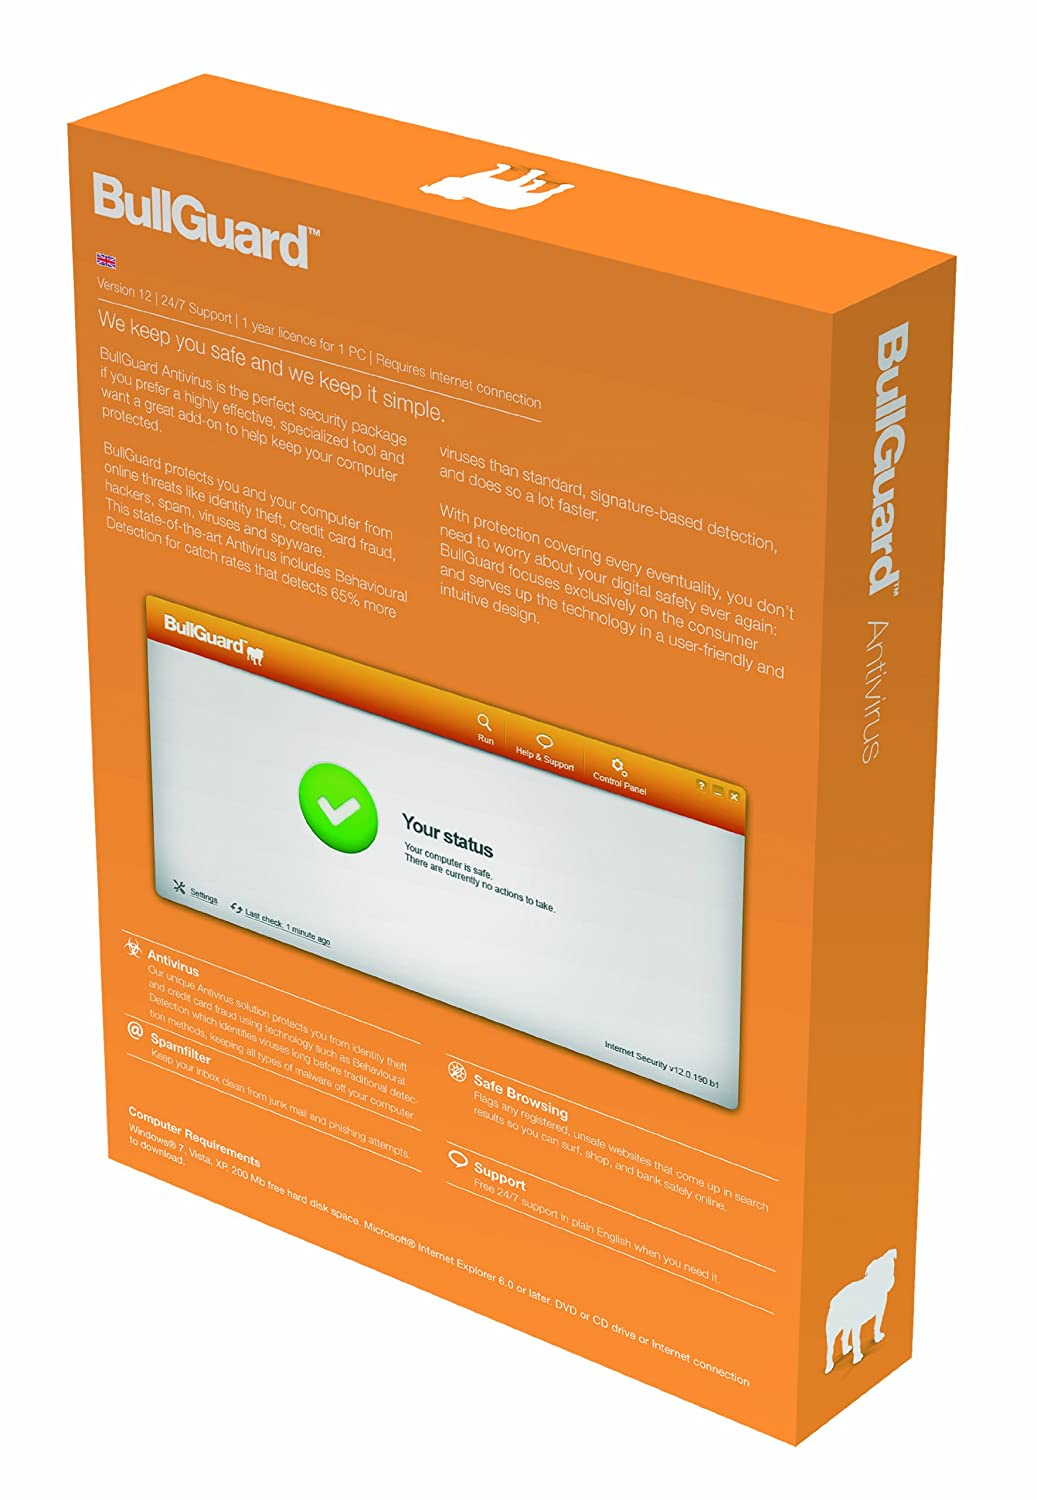 BullGuard Anti-Virus 12, 1 year Subscription, 1 User (PC